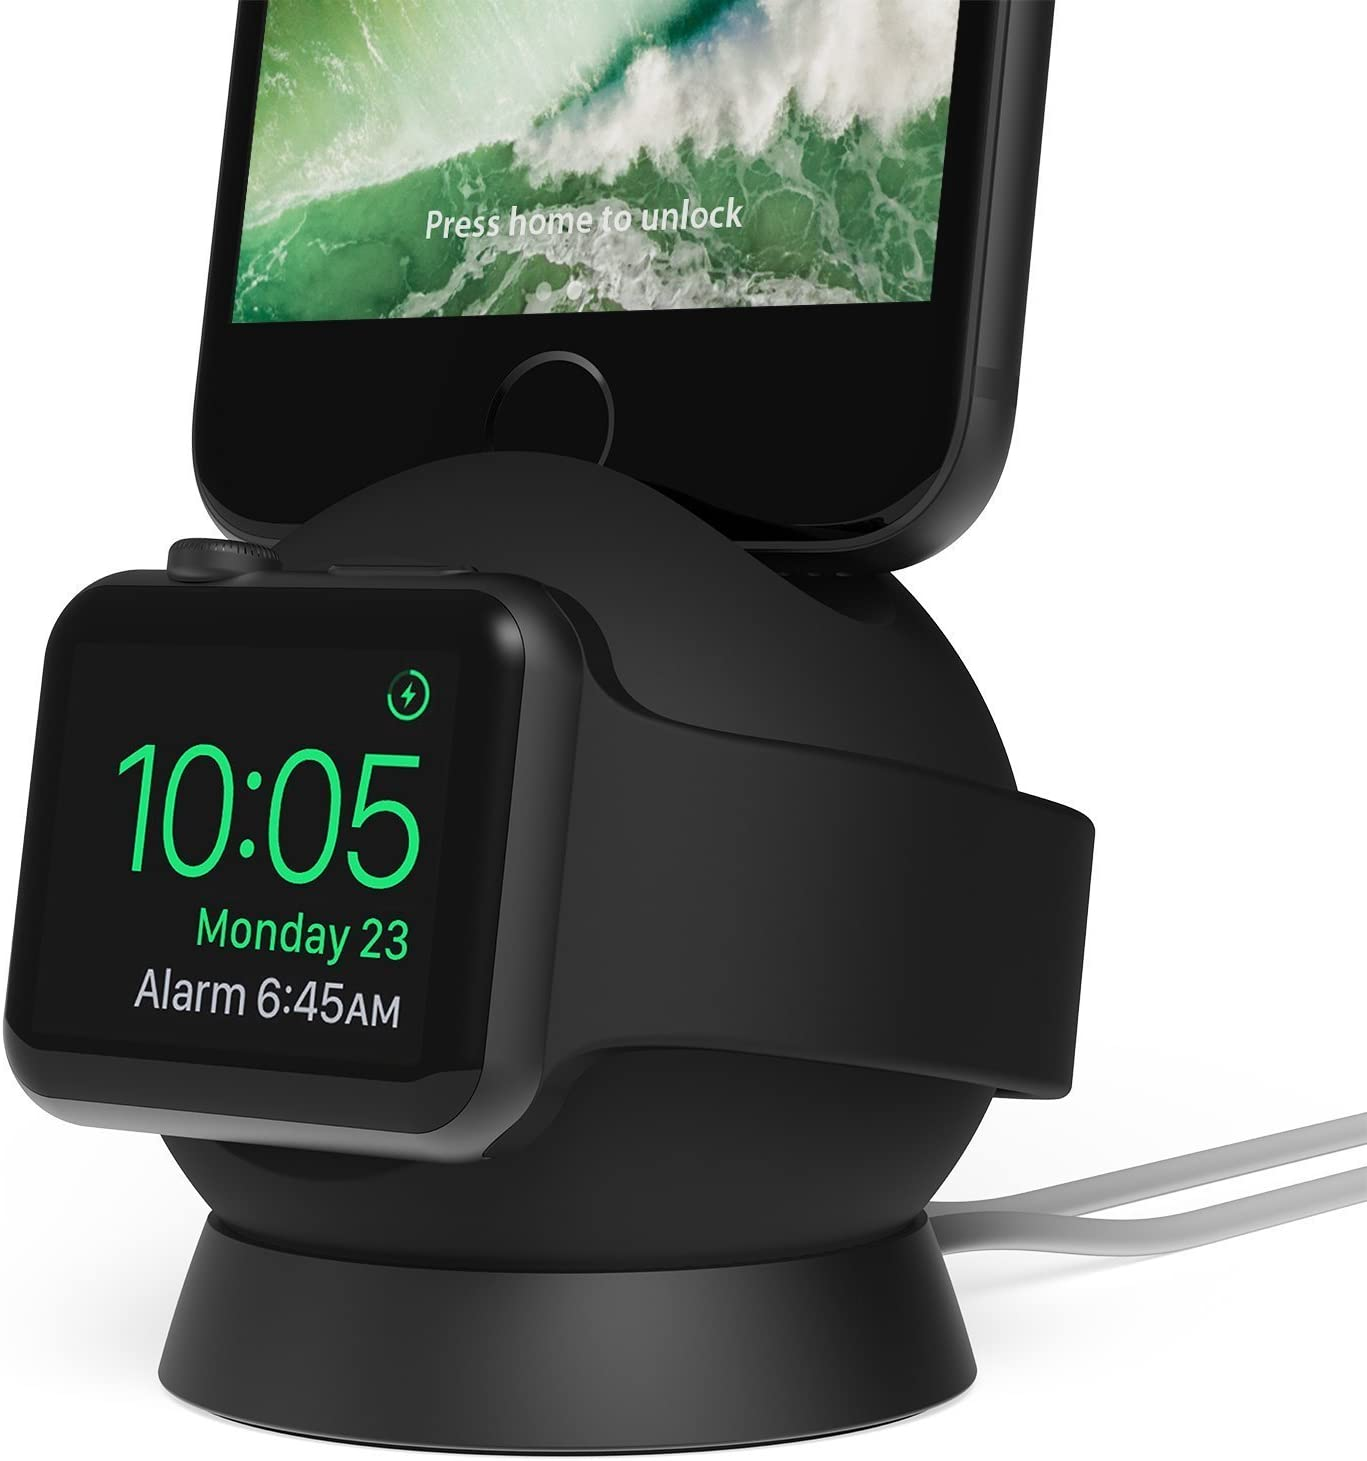 iOttie OmniBolt Apple Watch Stand, iPhone Docking Station for Apple Watch Series 2, 1, iPhone 7s Plus, 7s, 6s, SE, 6 - Graphite